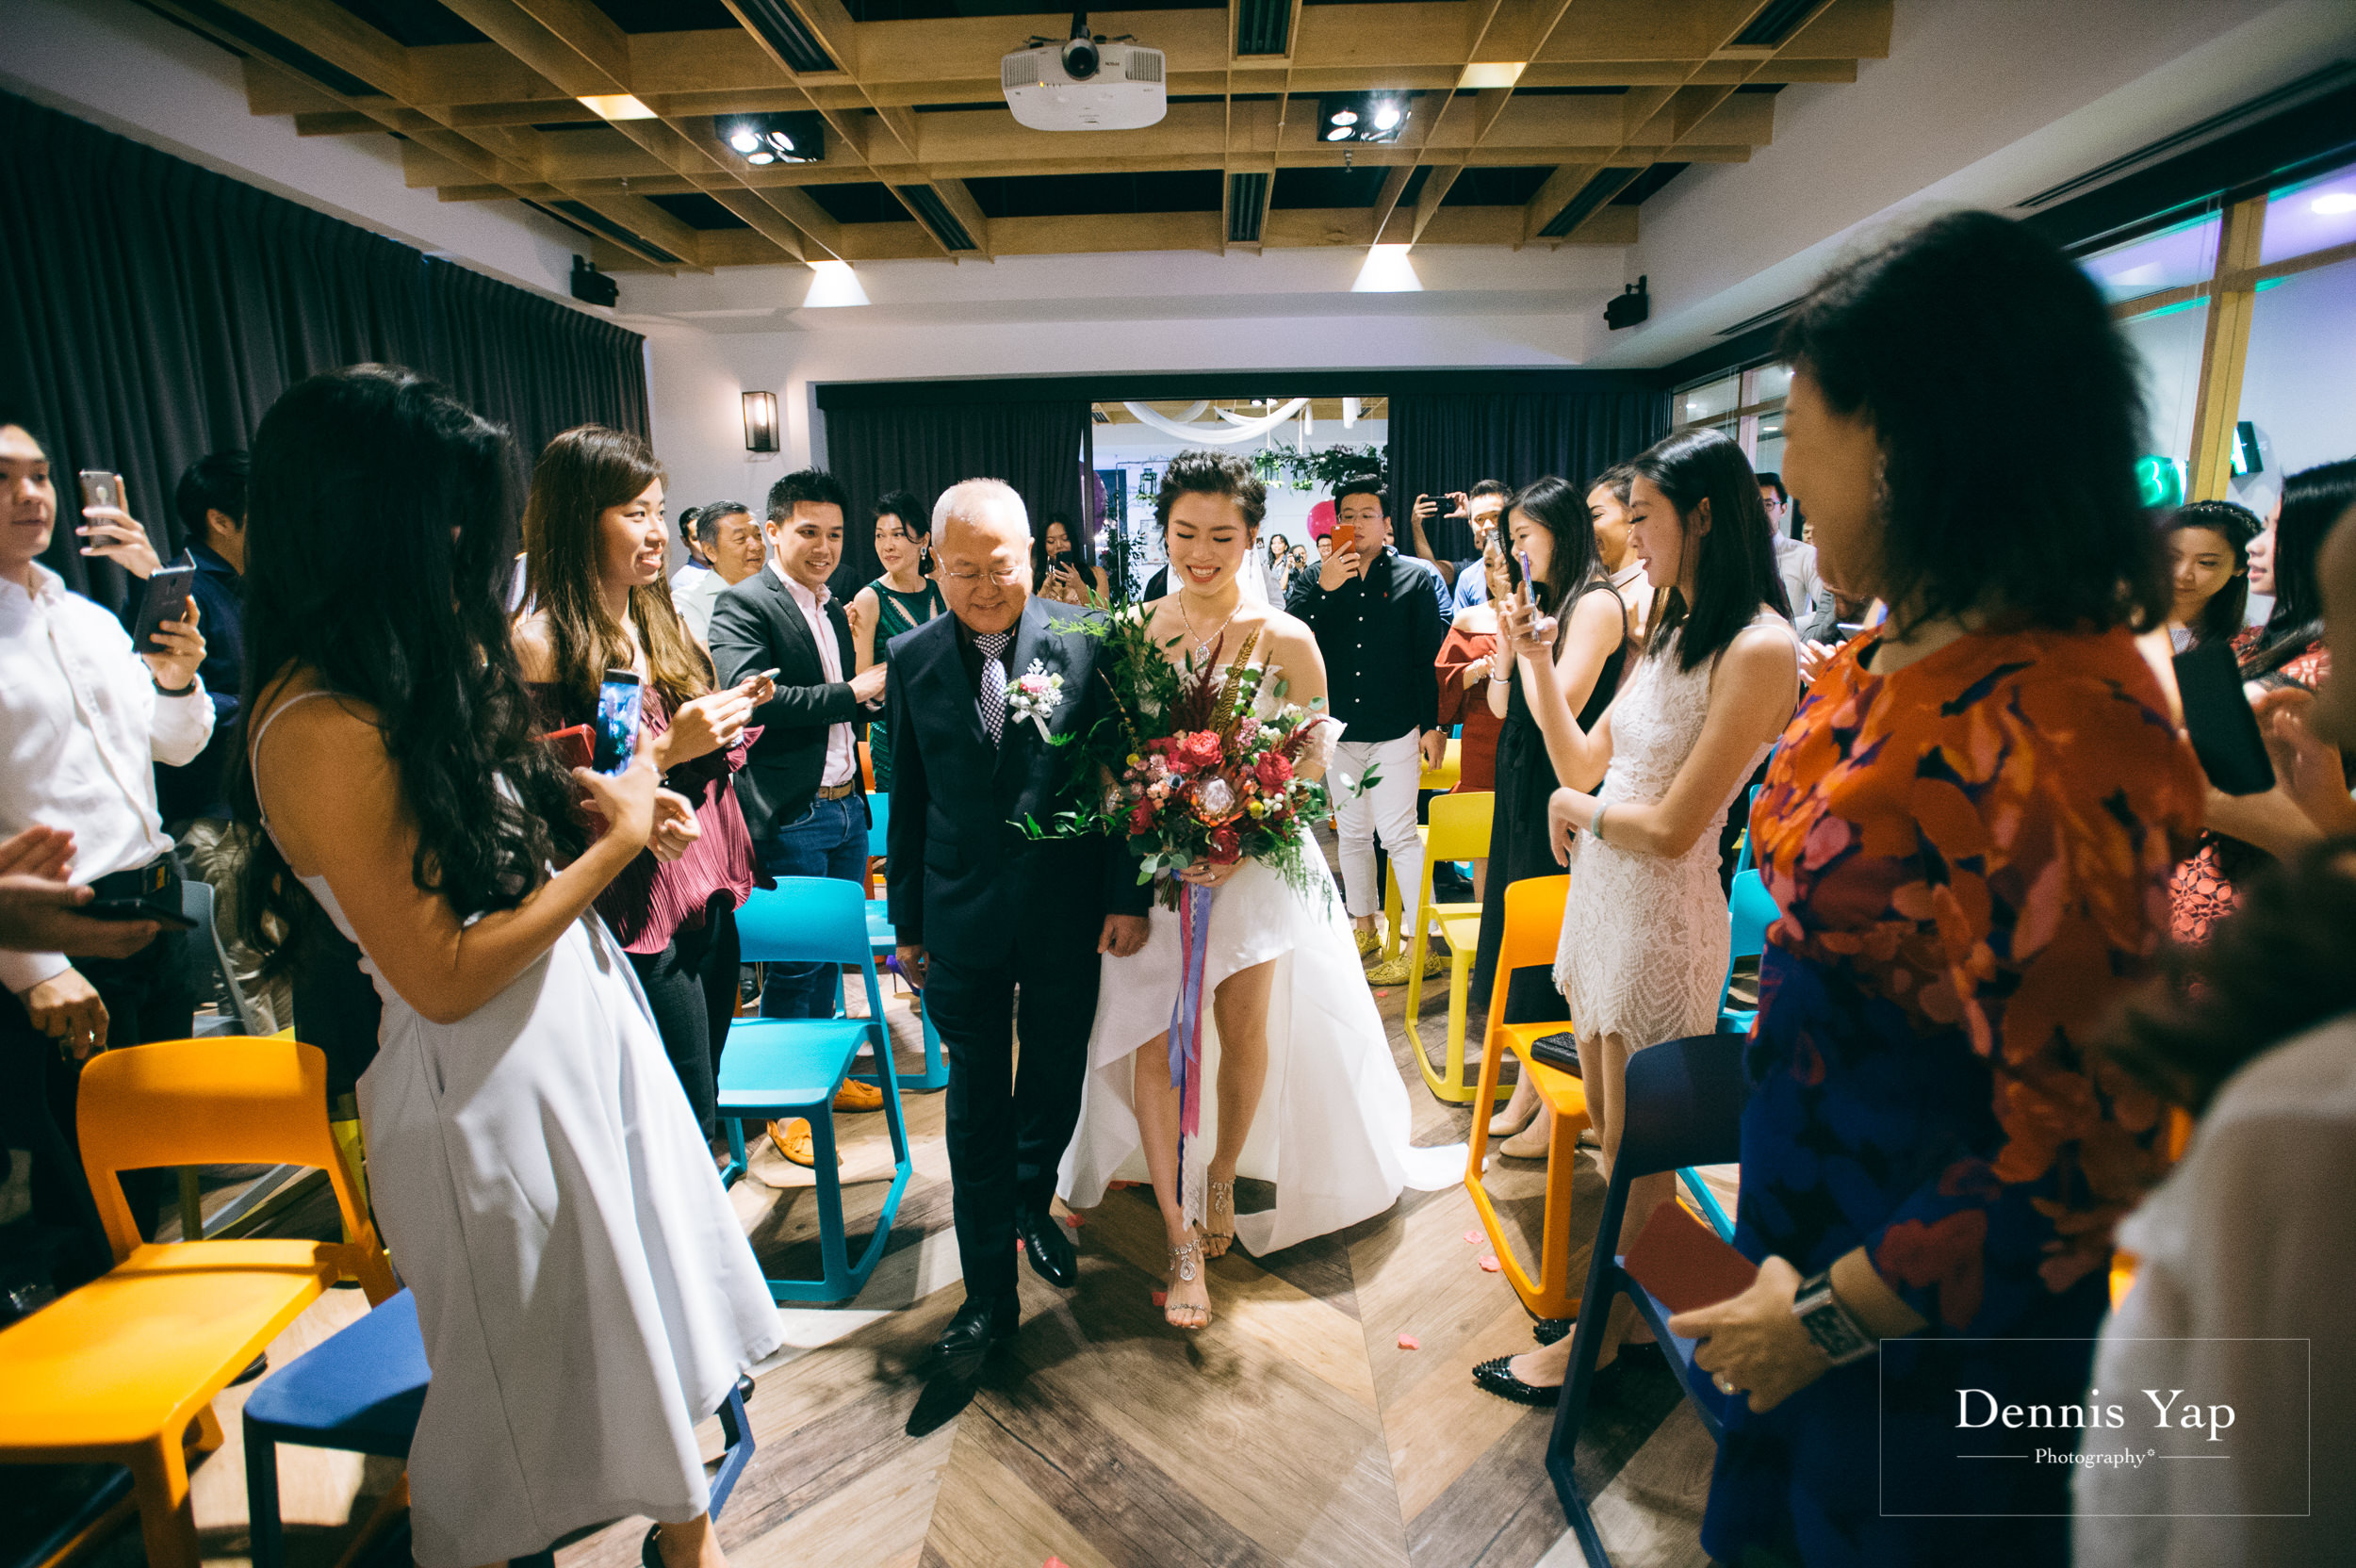 ser siang sze liang rom registration of marriage KL journal hotel dennis yap photography-9.jpg